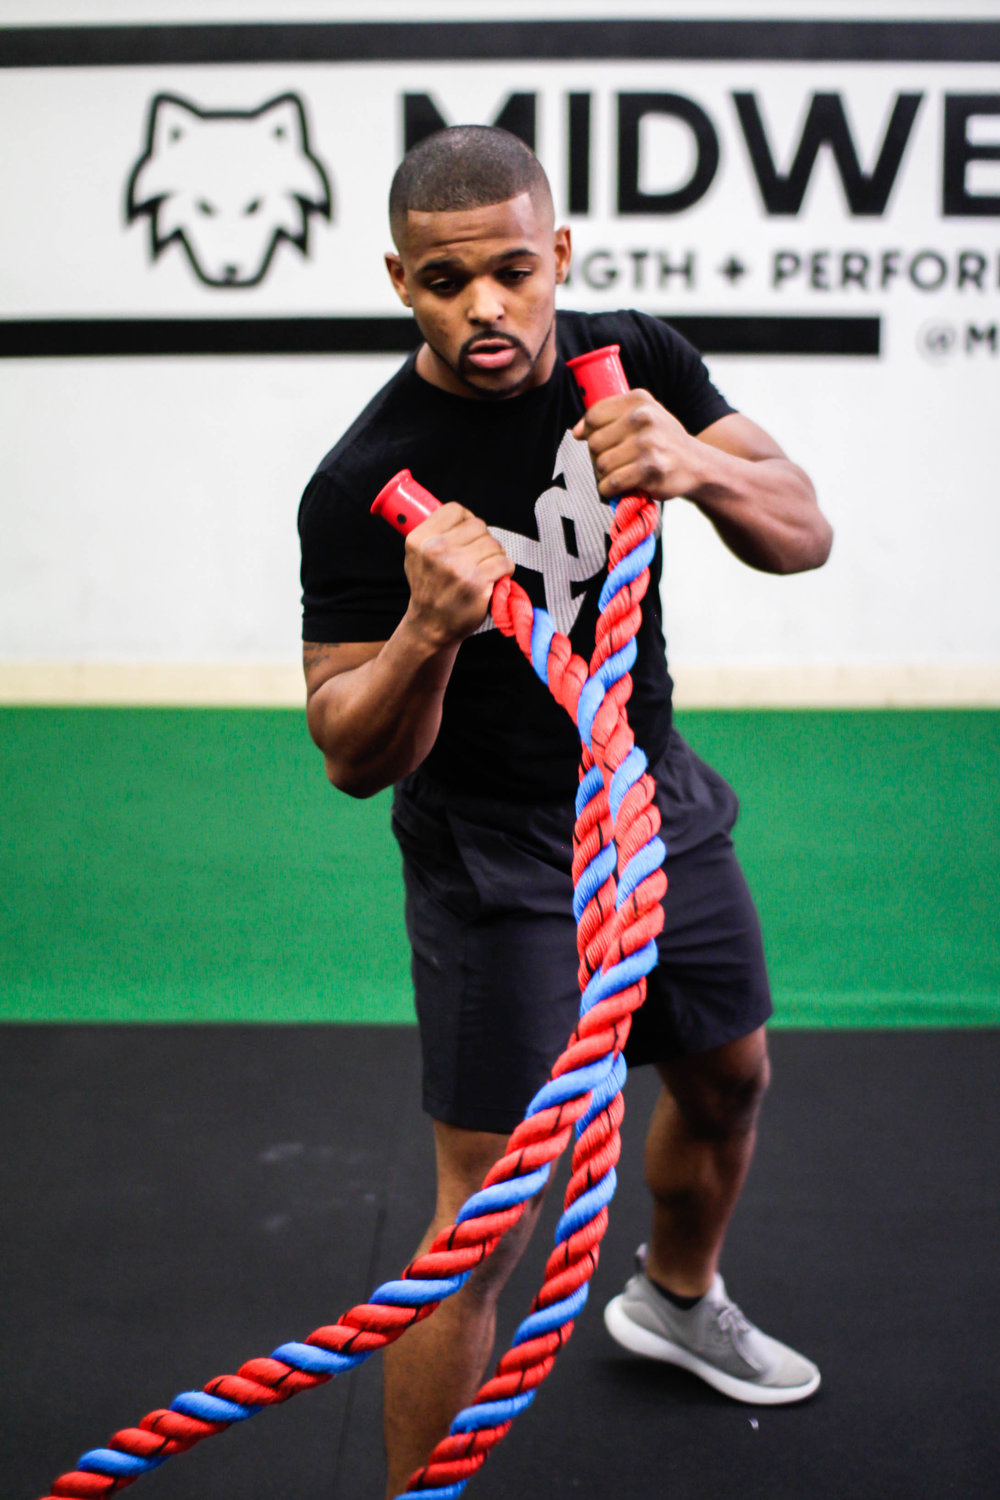 Battle Rope exercises and classes near me, in Wheaton and Naperville, Illinois.